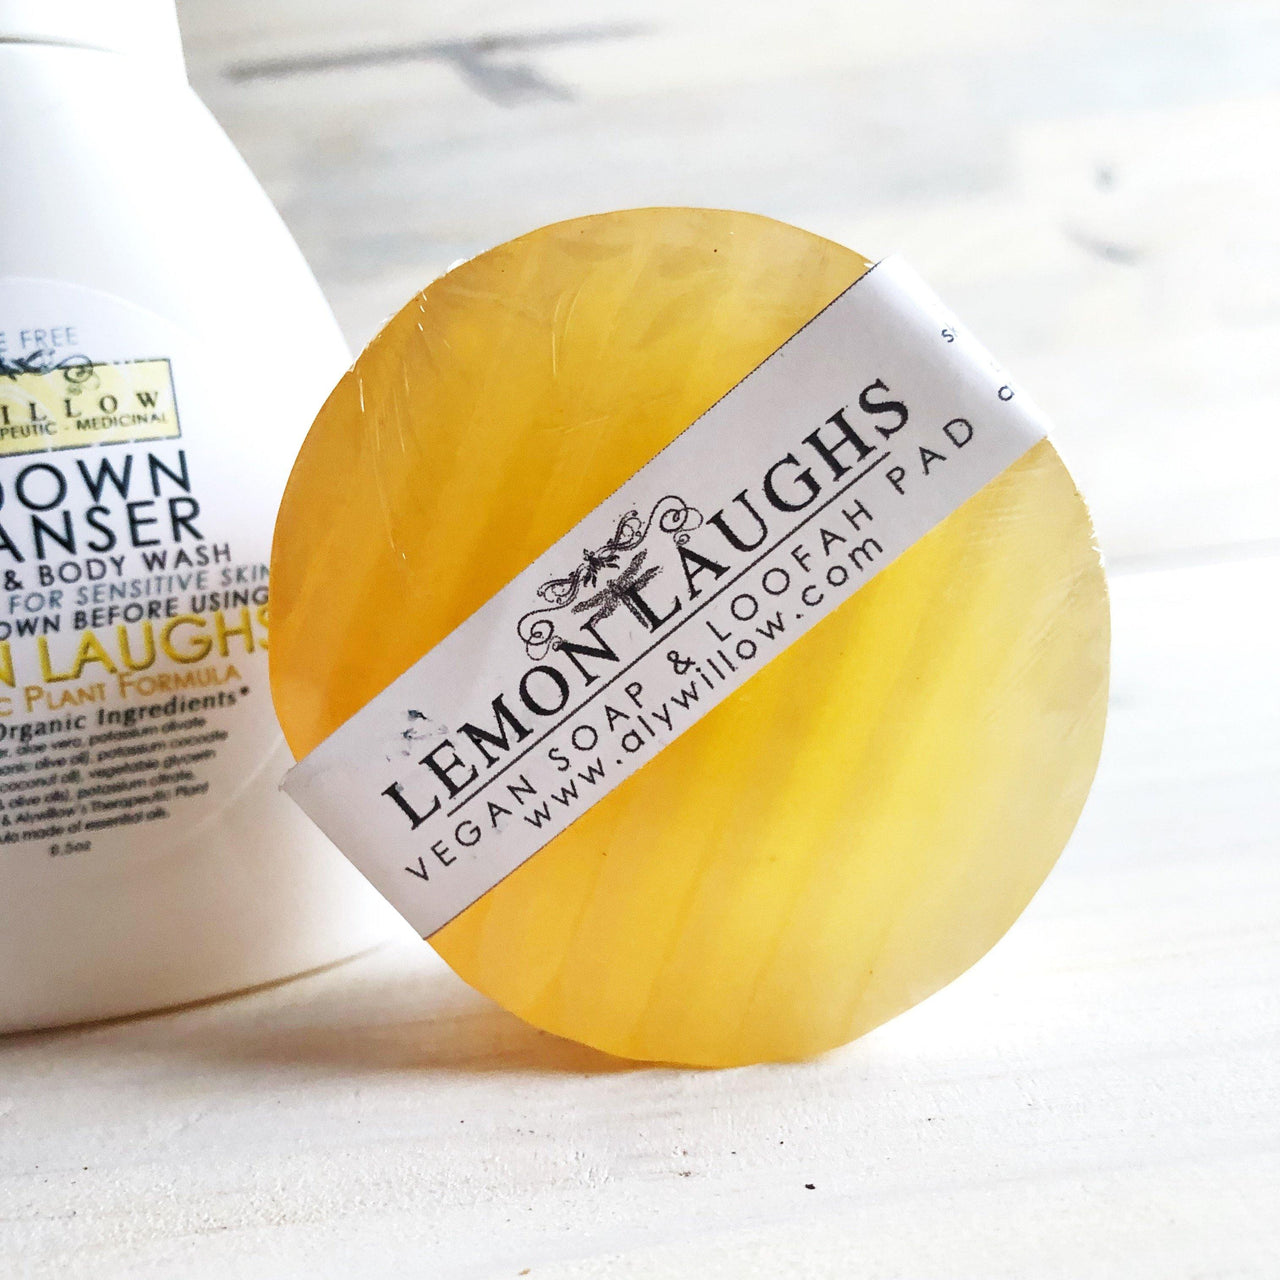 LEMON LAUGHS Vegan Bar Cleanser